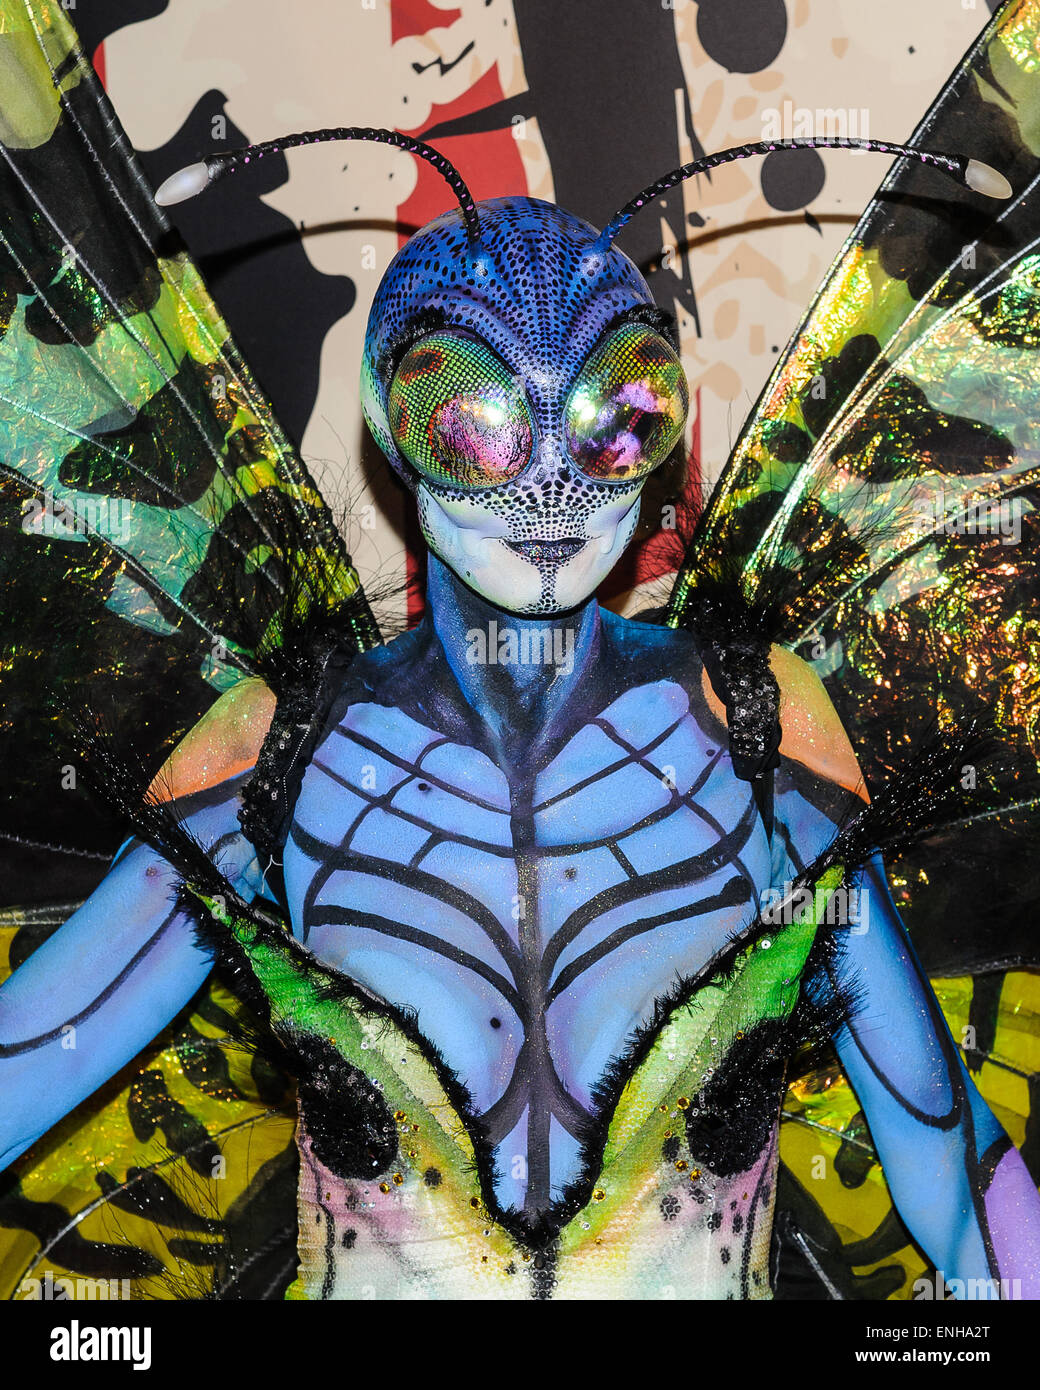 Heidi Klum's 15th Annual Halloween Party at TAO Downtown Featuring ...